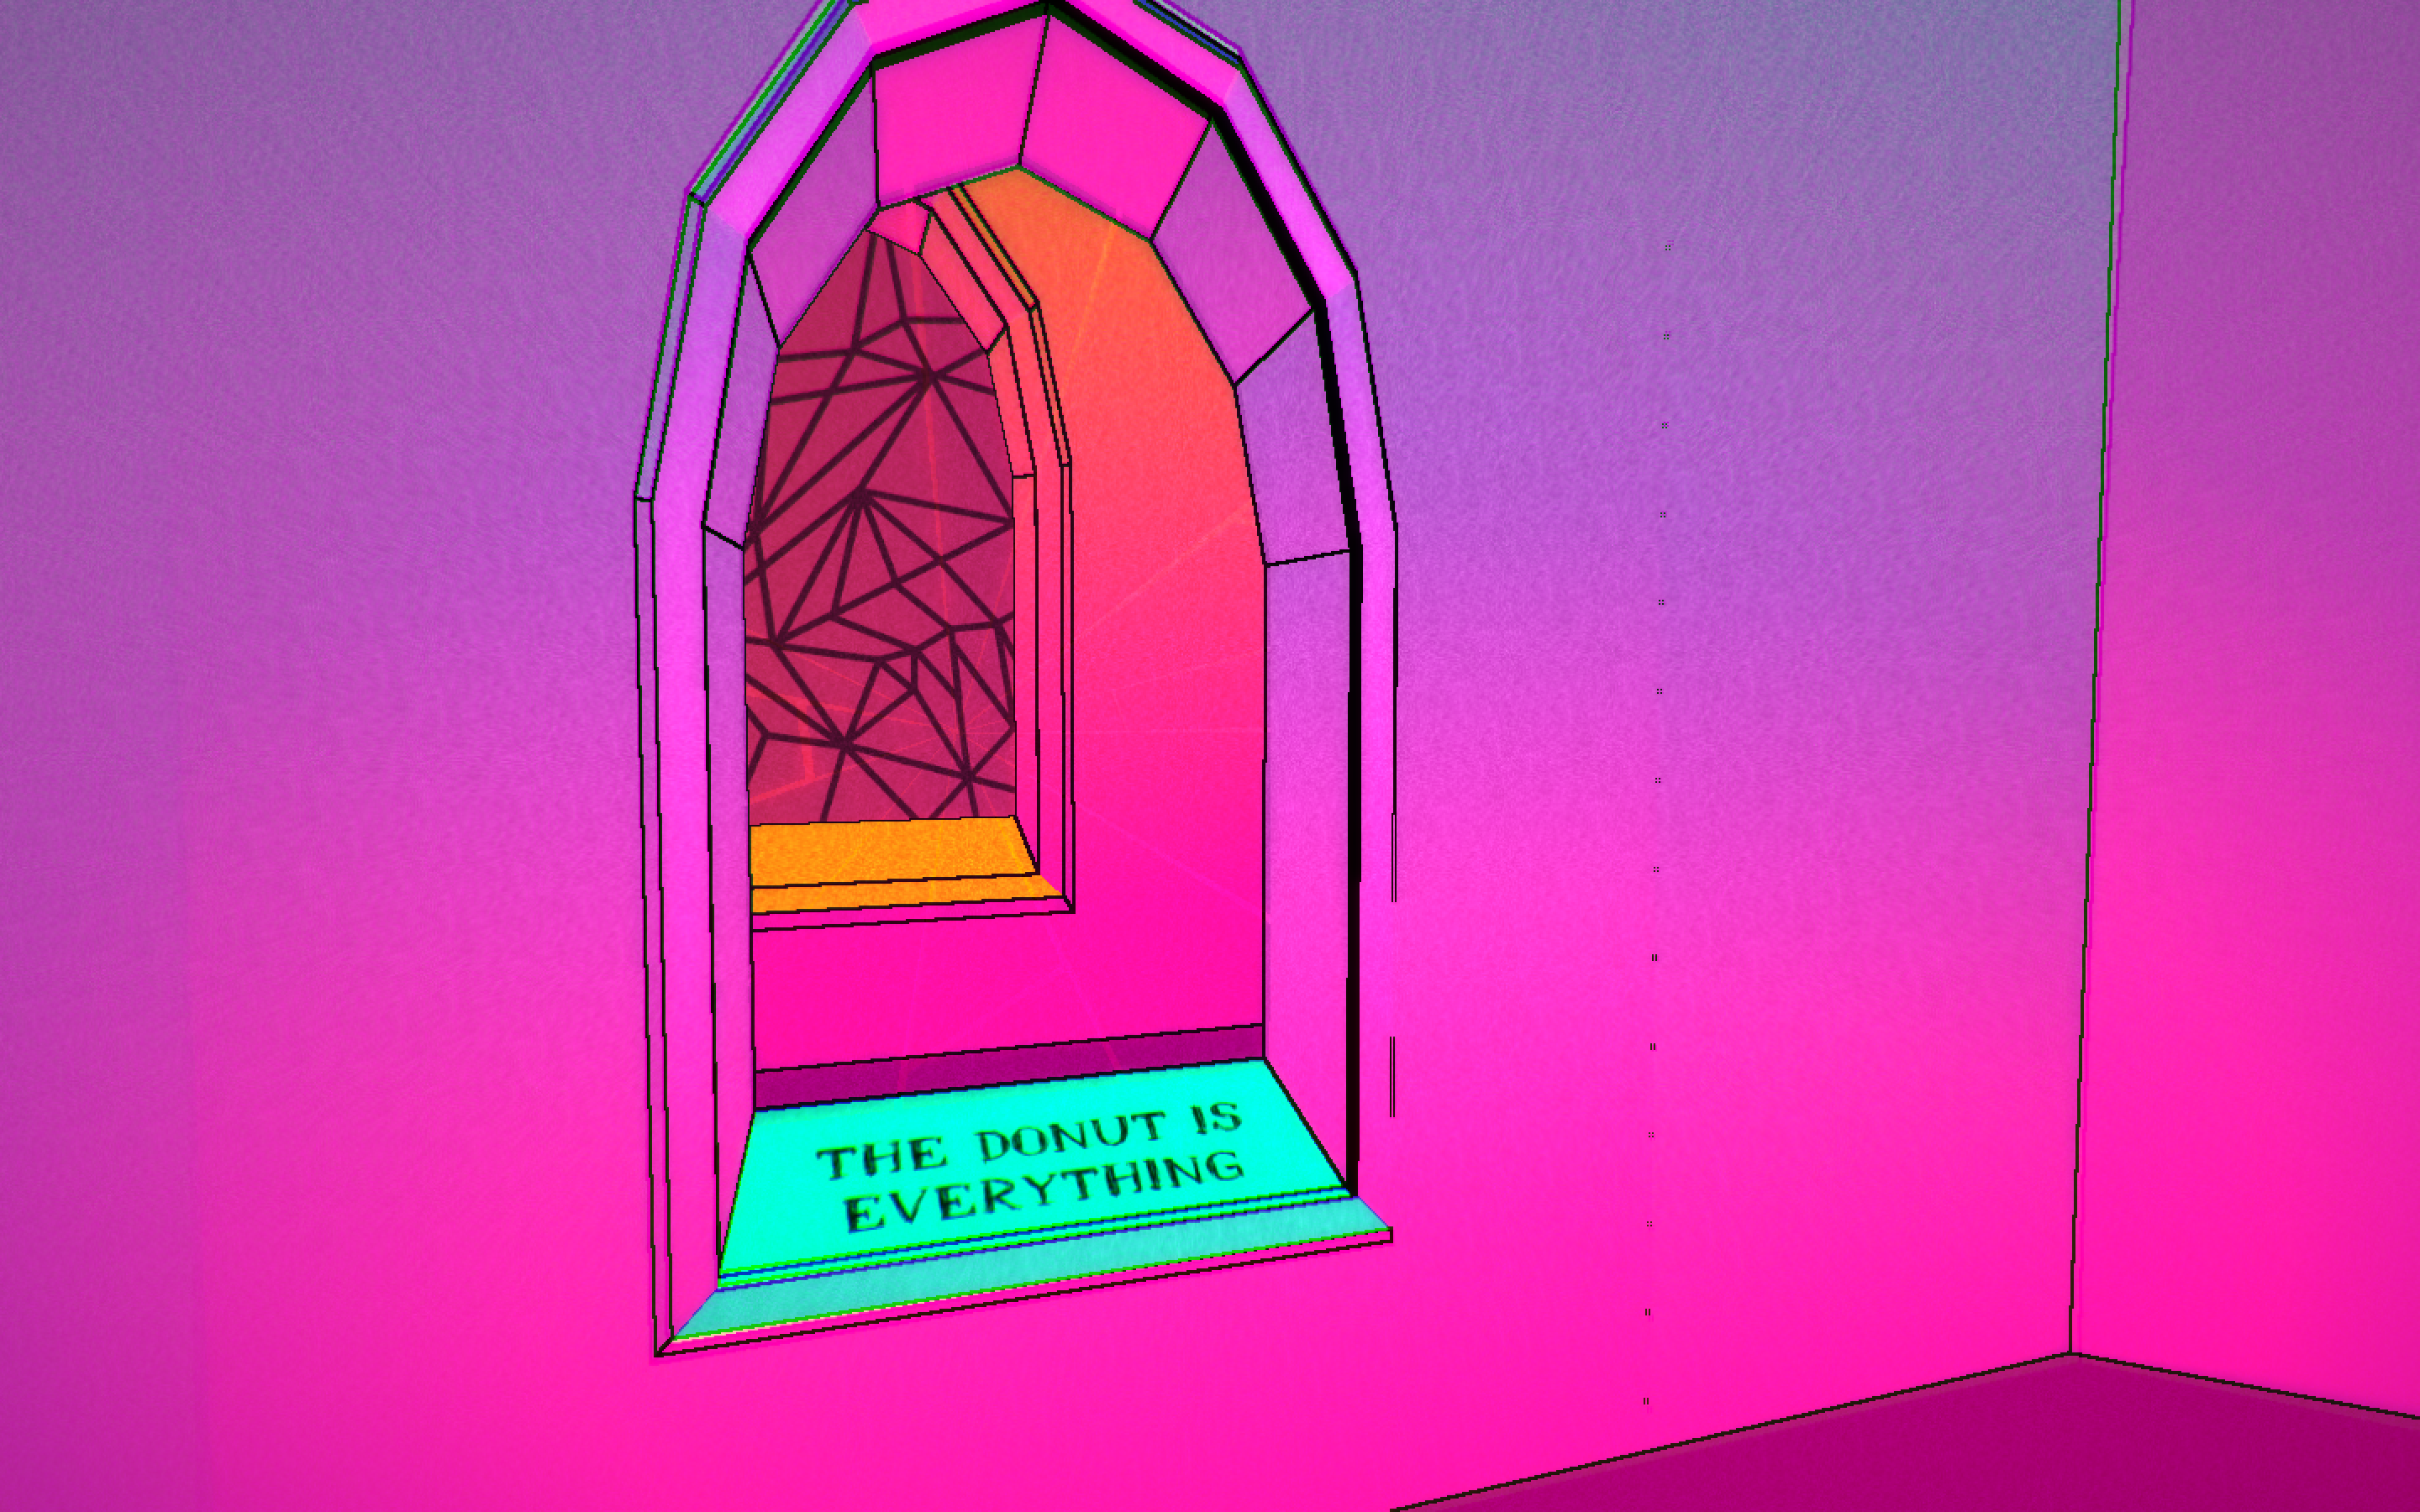 This Psychedelic Game Might Hurt Your Eyes, But it's Worth it - VICE